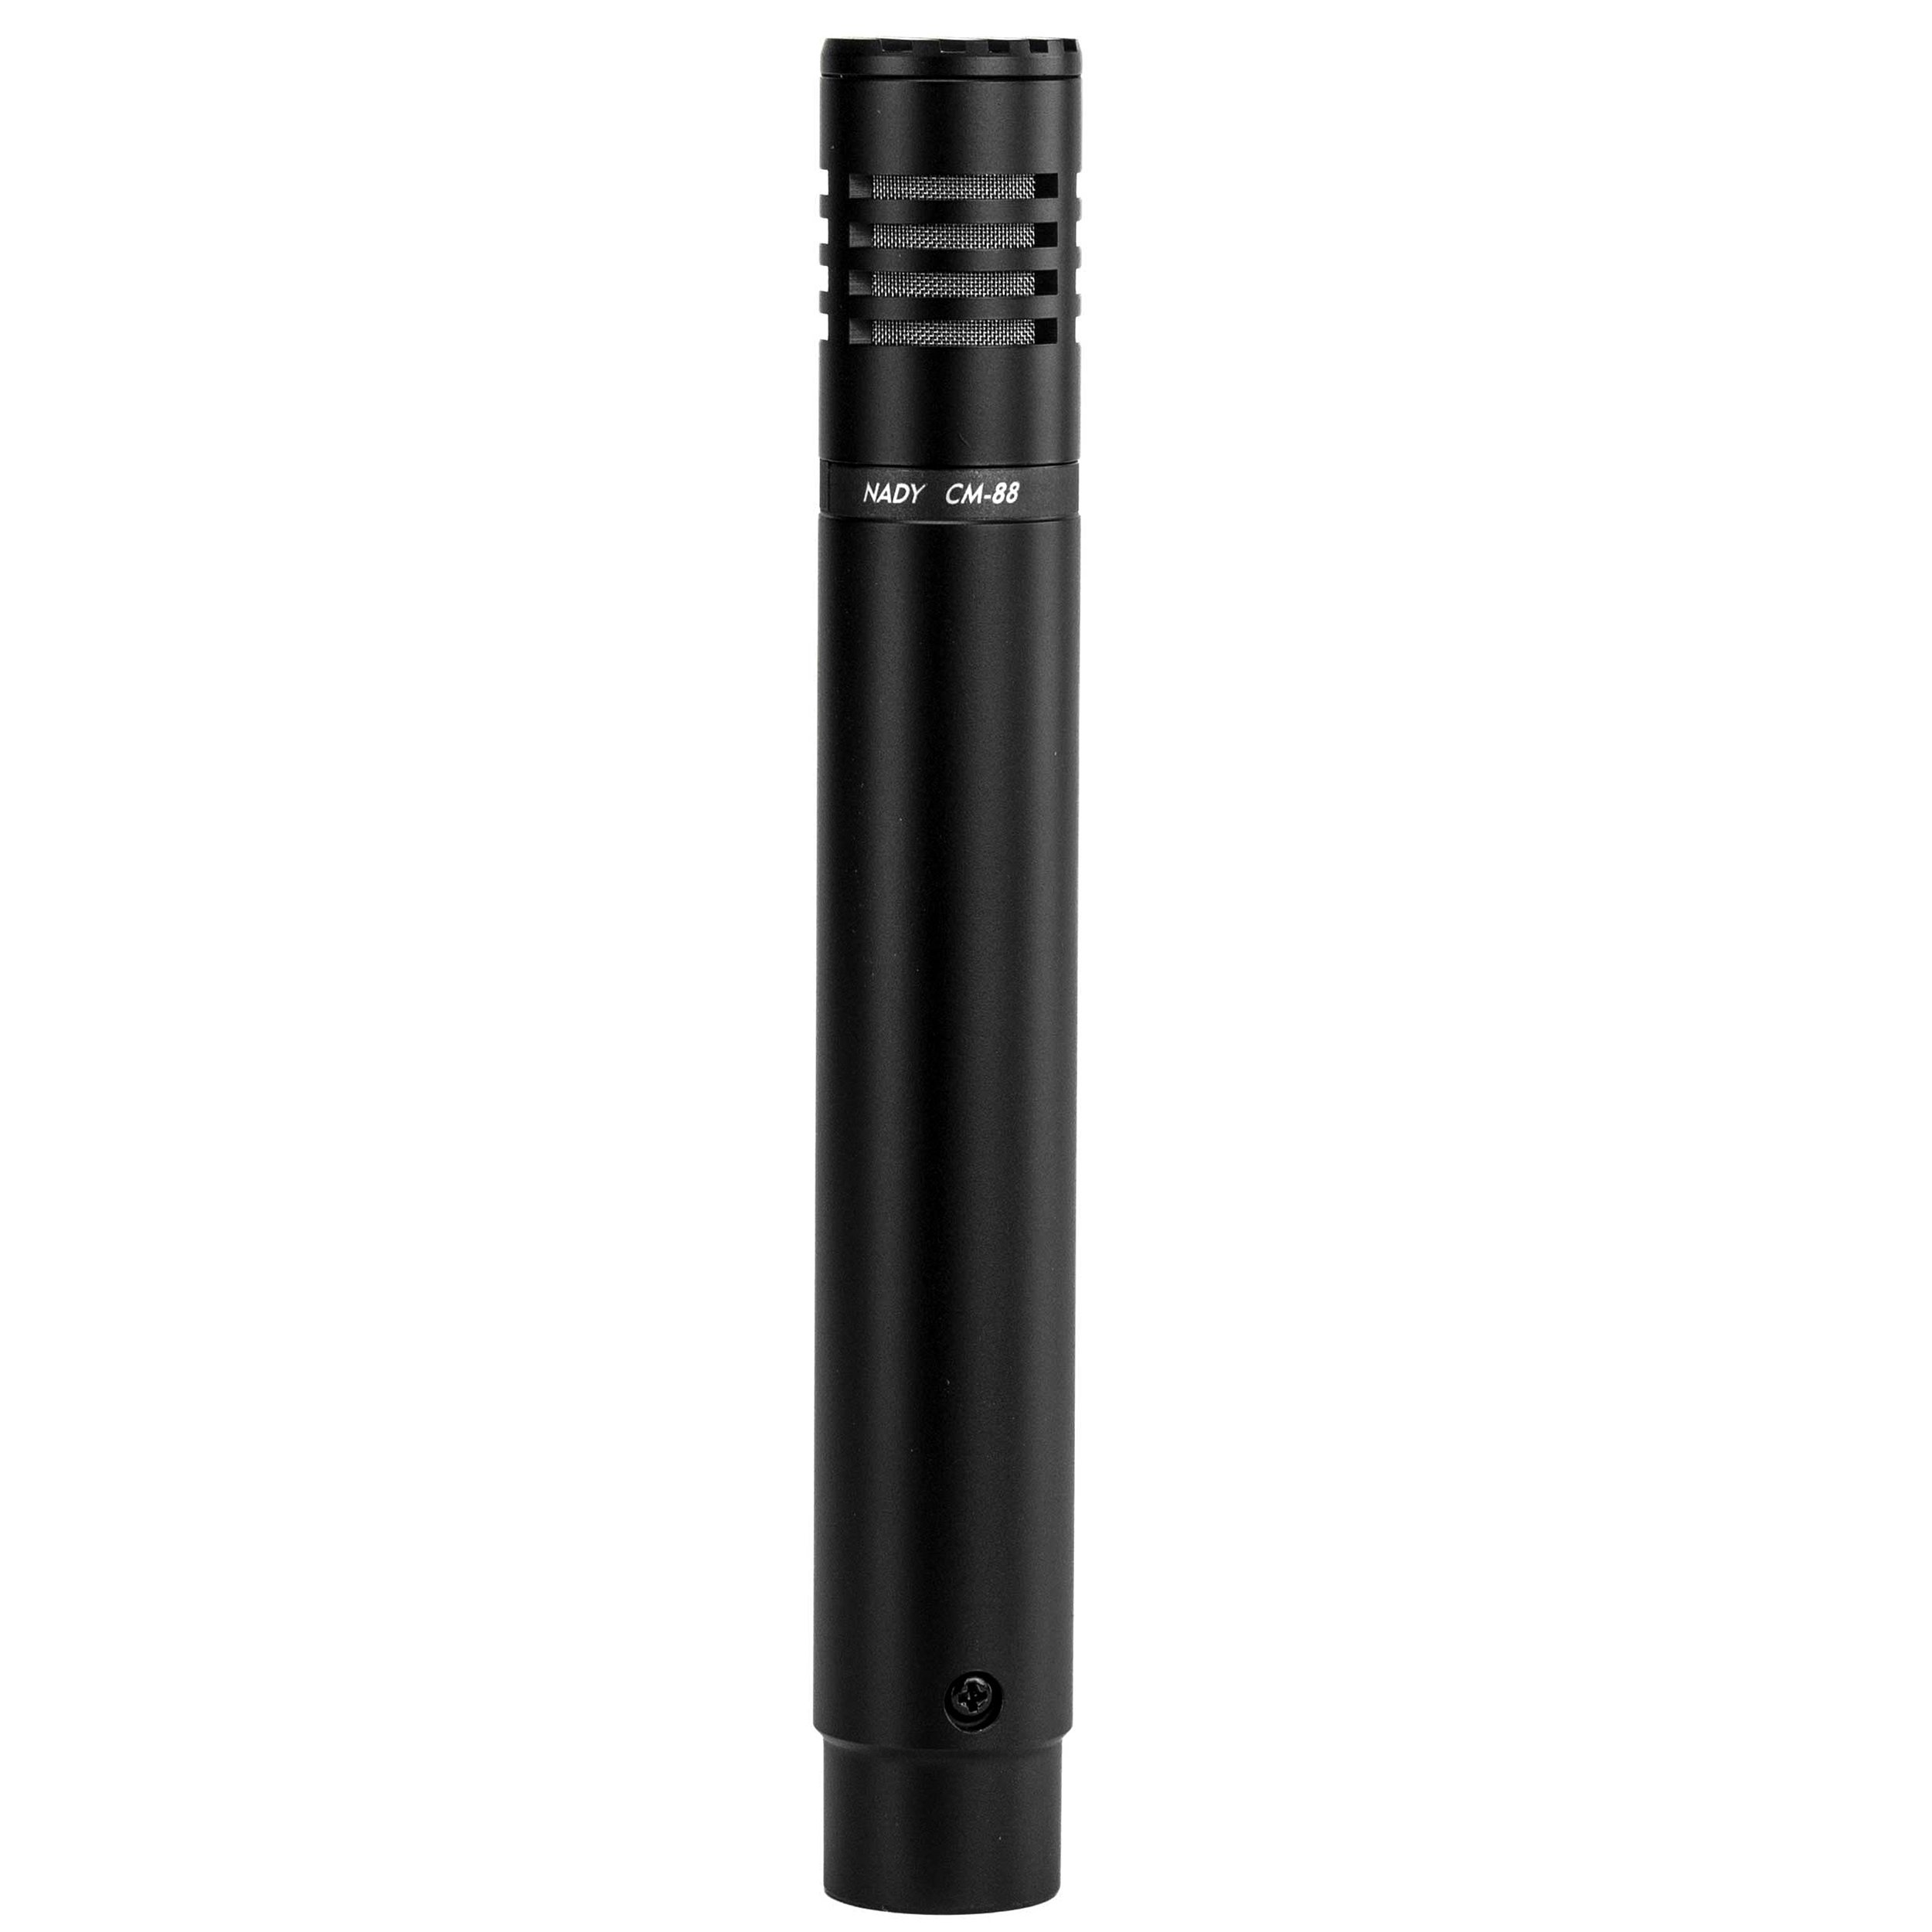 Nady CM-88 Condenser Microphone - Designed for overhead applications for cymbals, acoustic guitars, and vocals by Nady